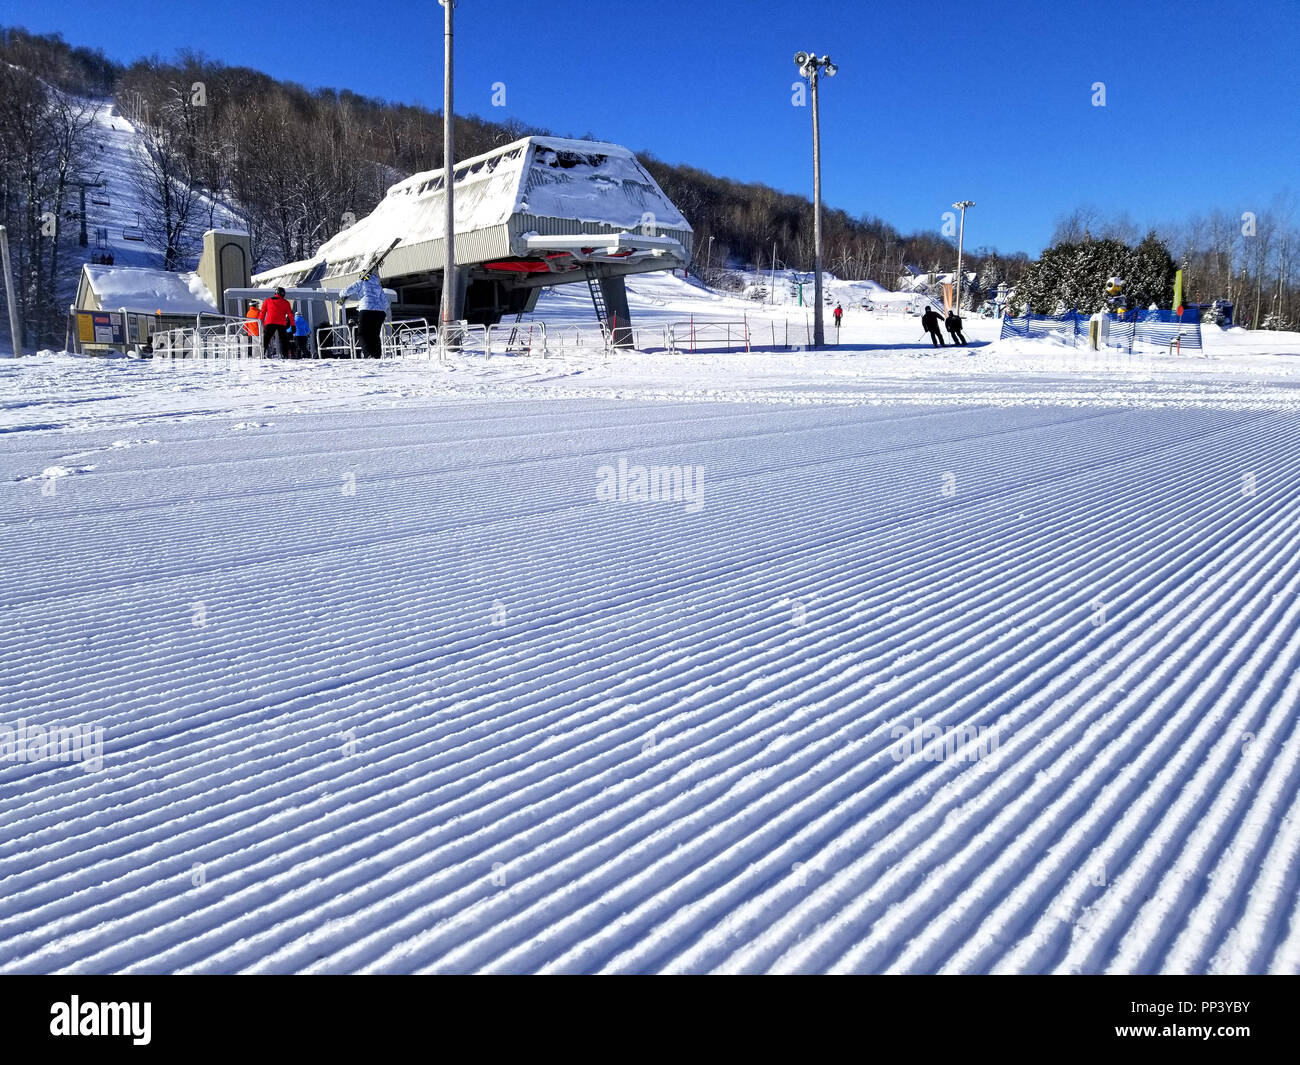 Groomed snow of alpine skiing trails at Saint-Sauveur, Quebec - Stock Image